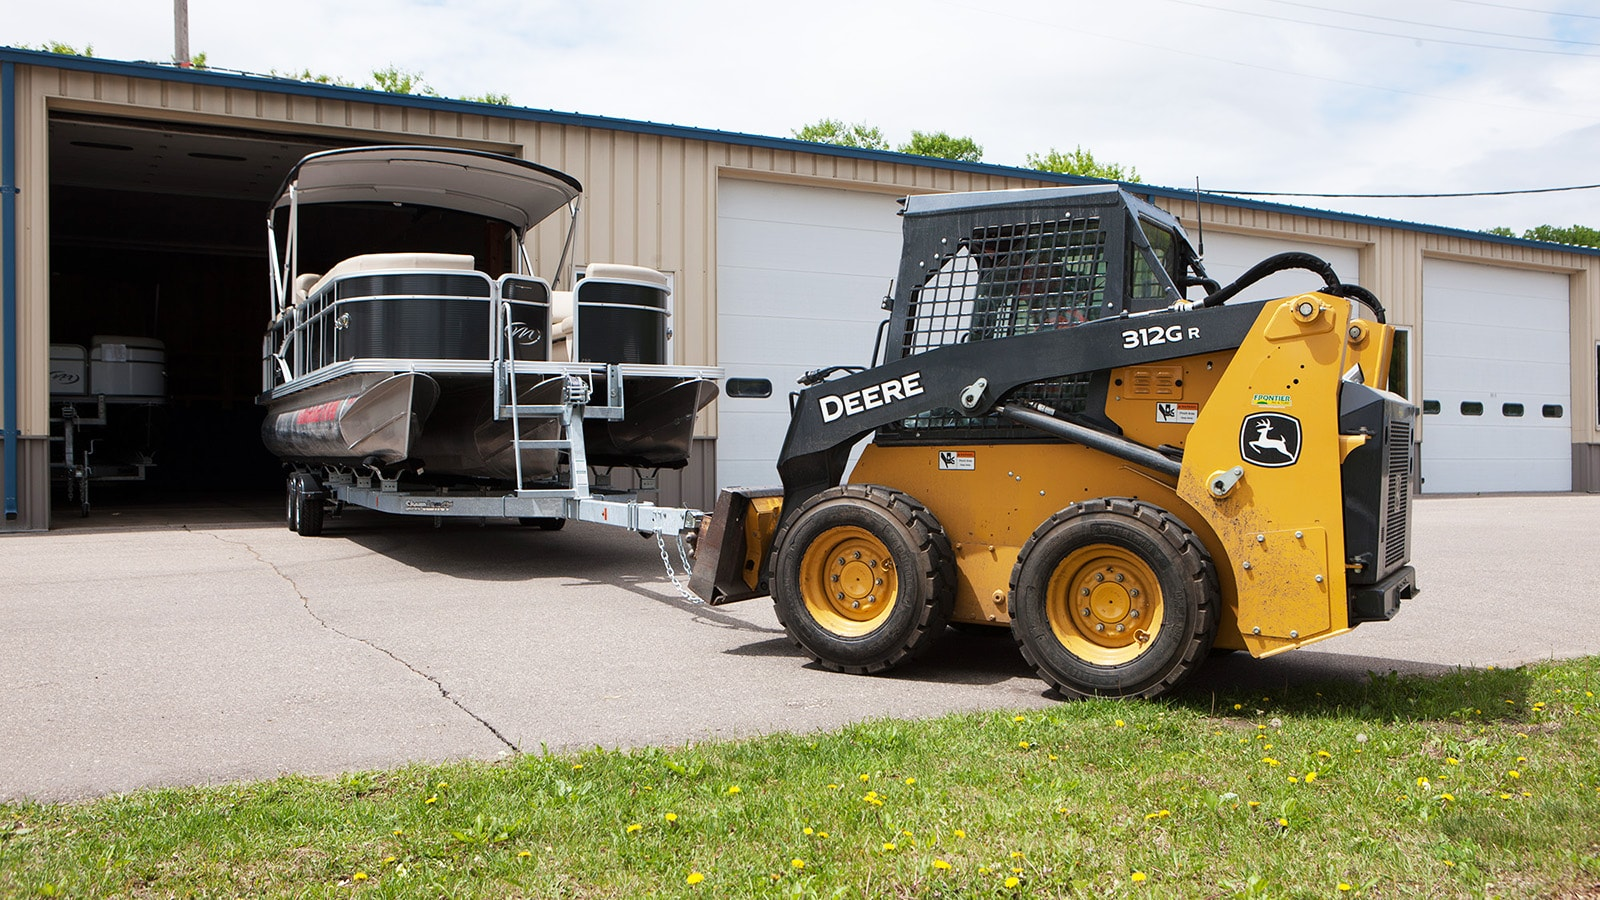 312GR skid steer pushes a pontoon boat into storage unit